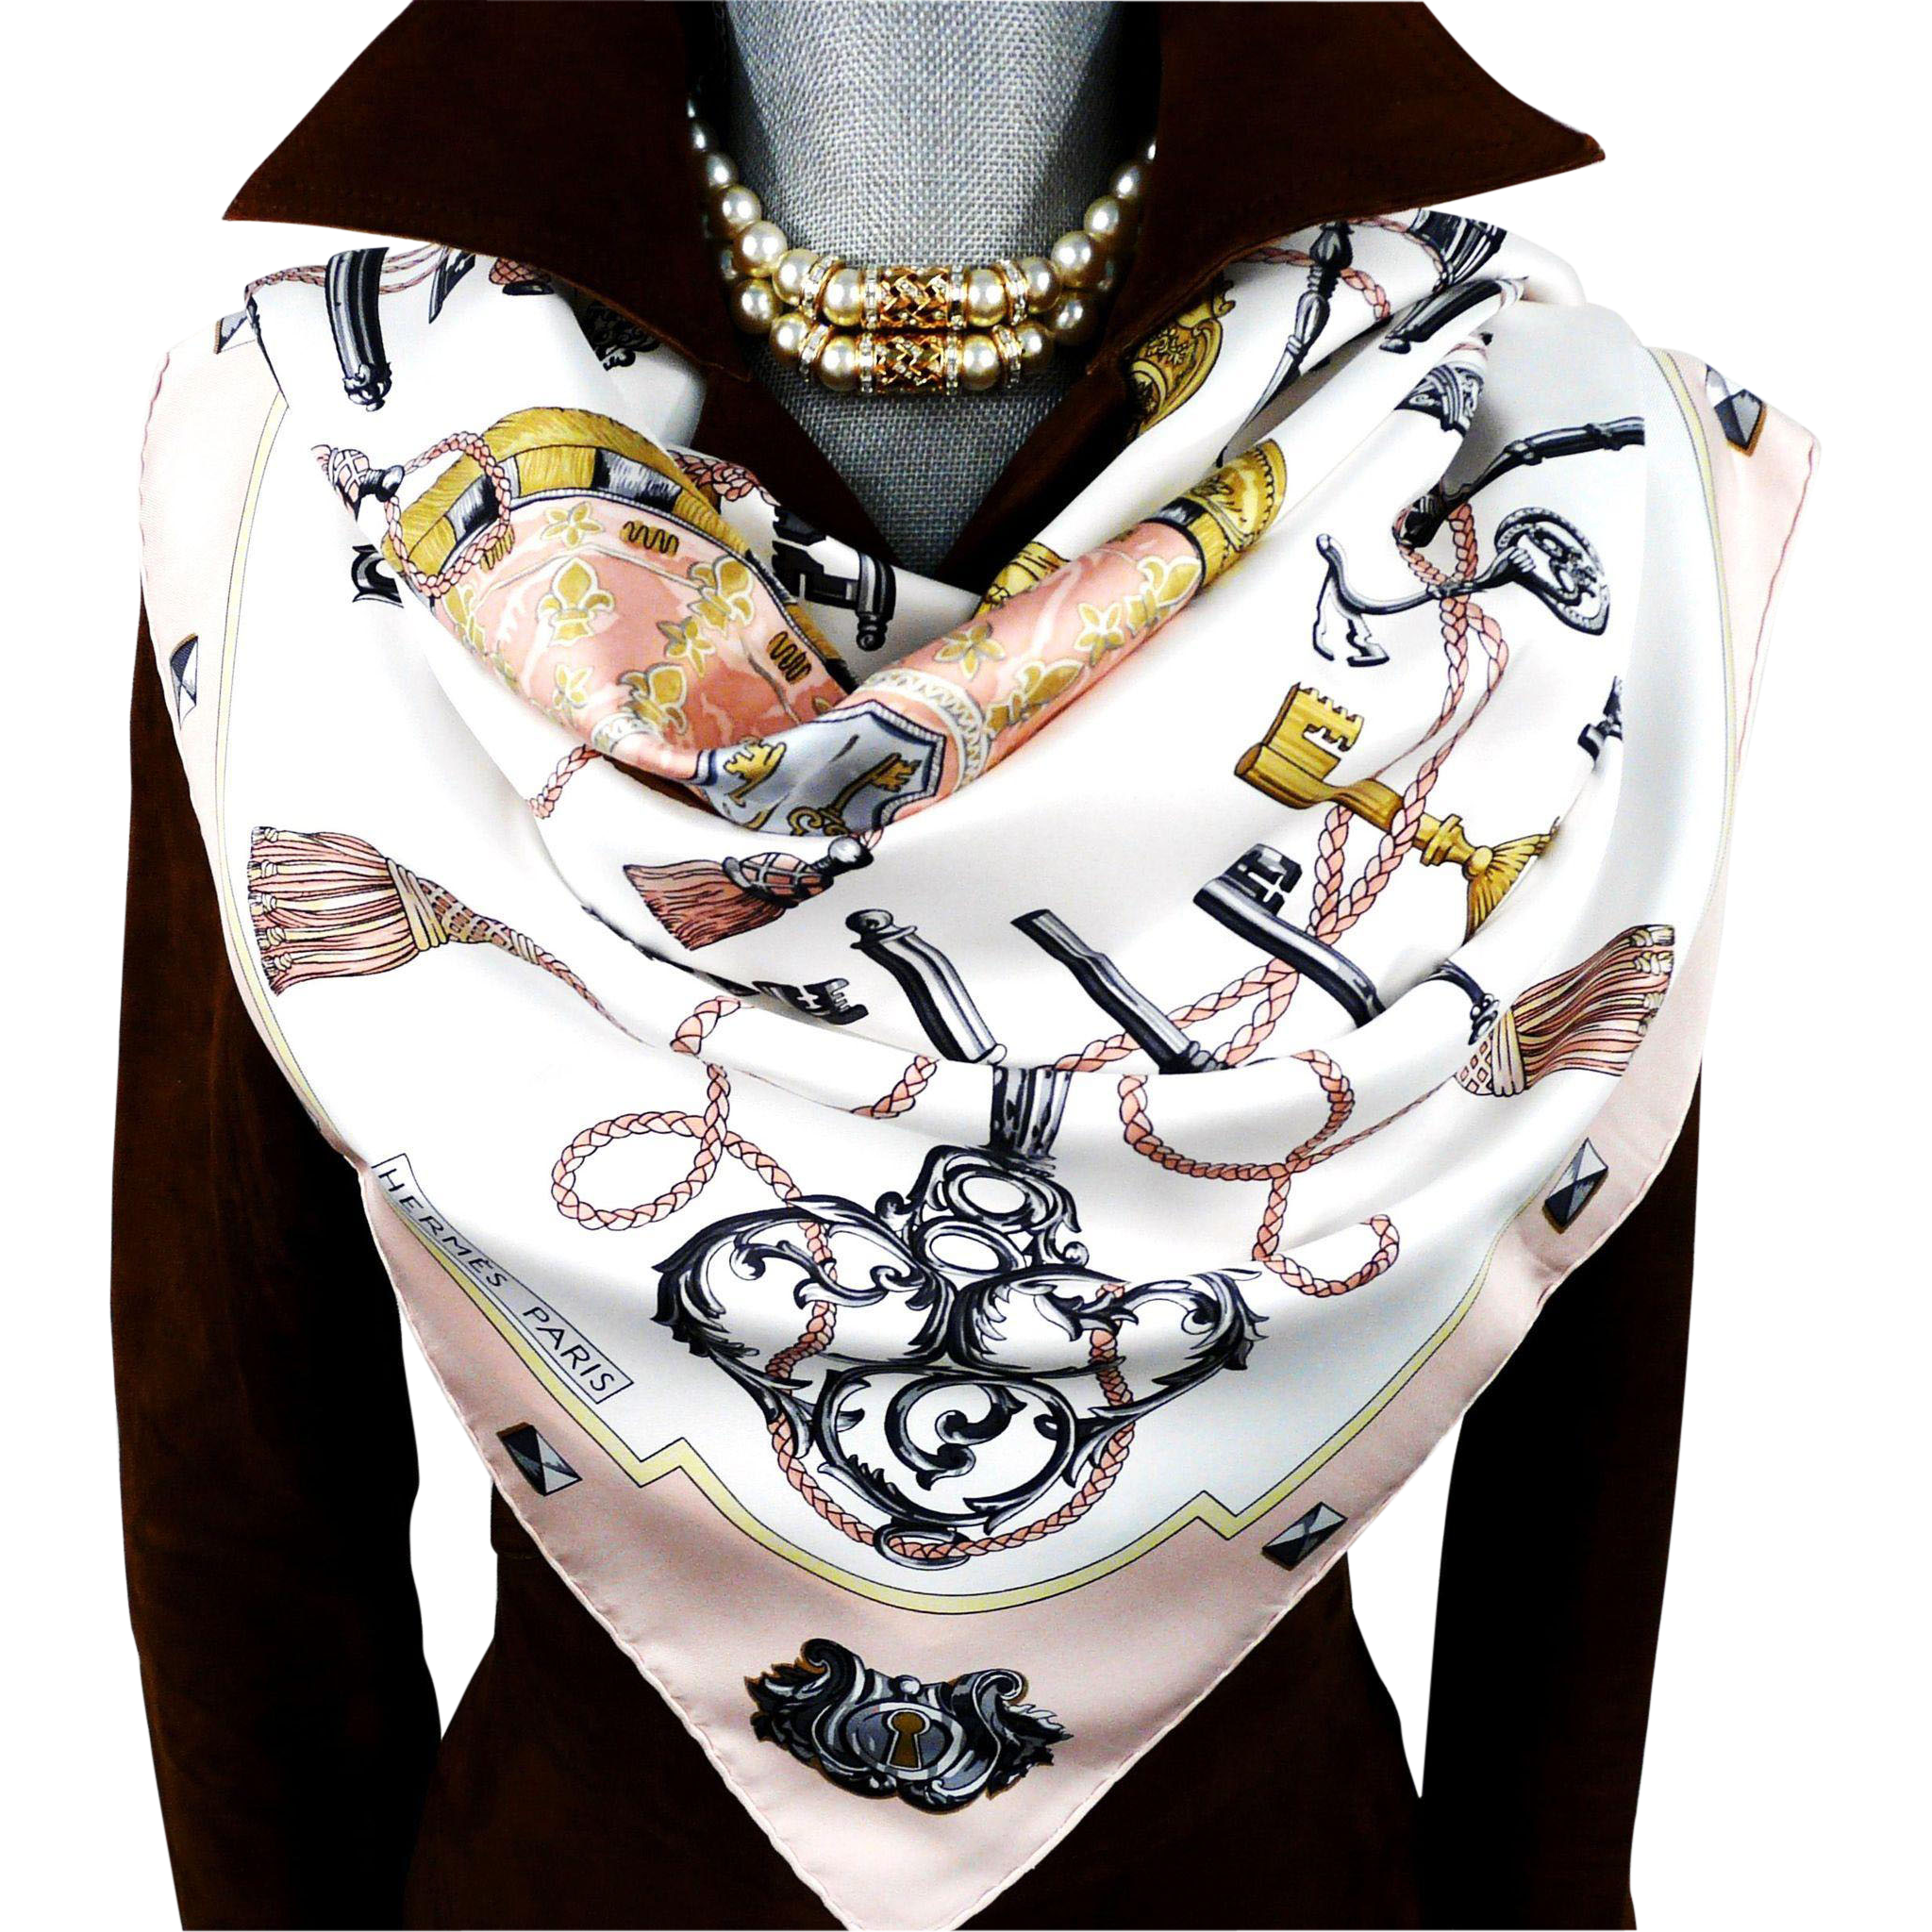 """Les Cles Hermes 36"""" x 36"""" silk scarf - original design by Caty Latham was first issued in 1965"""